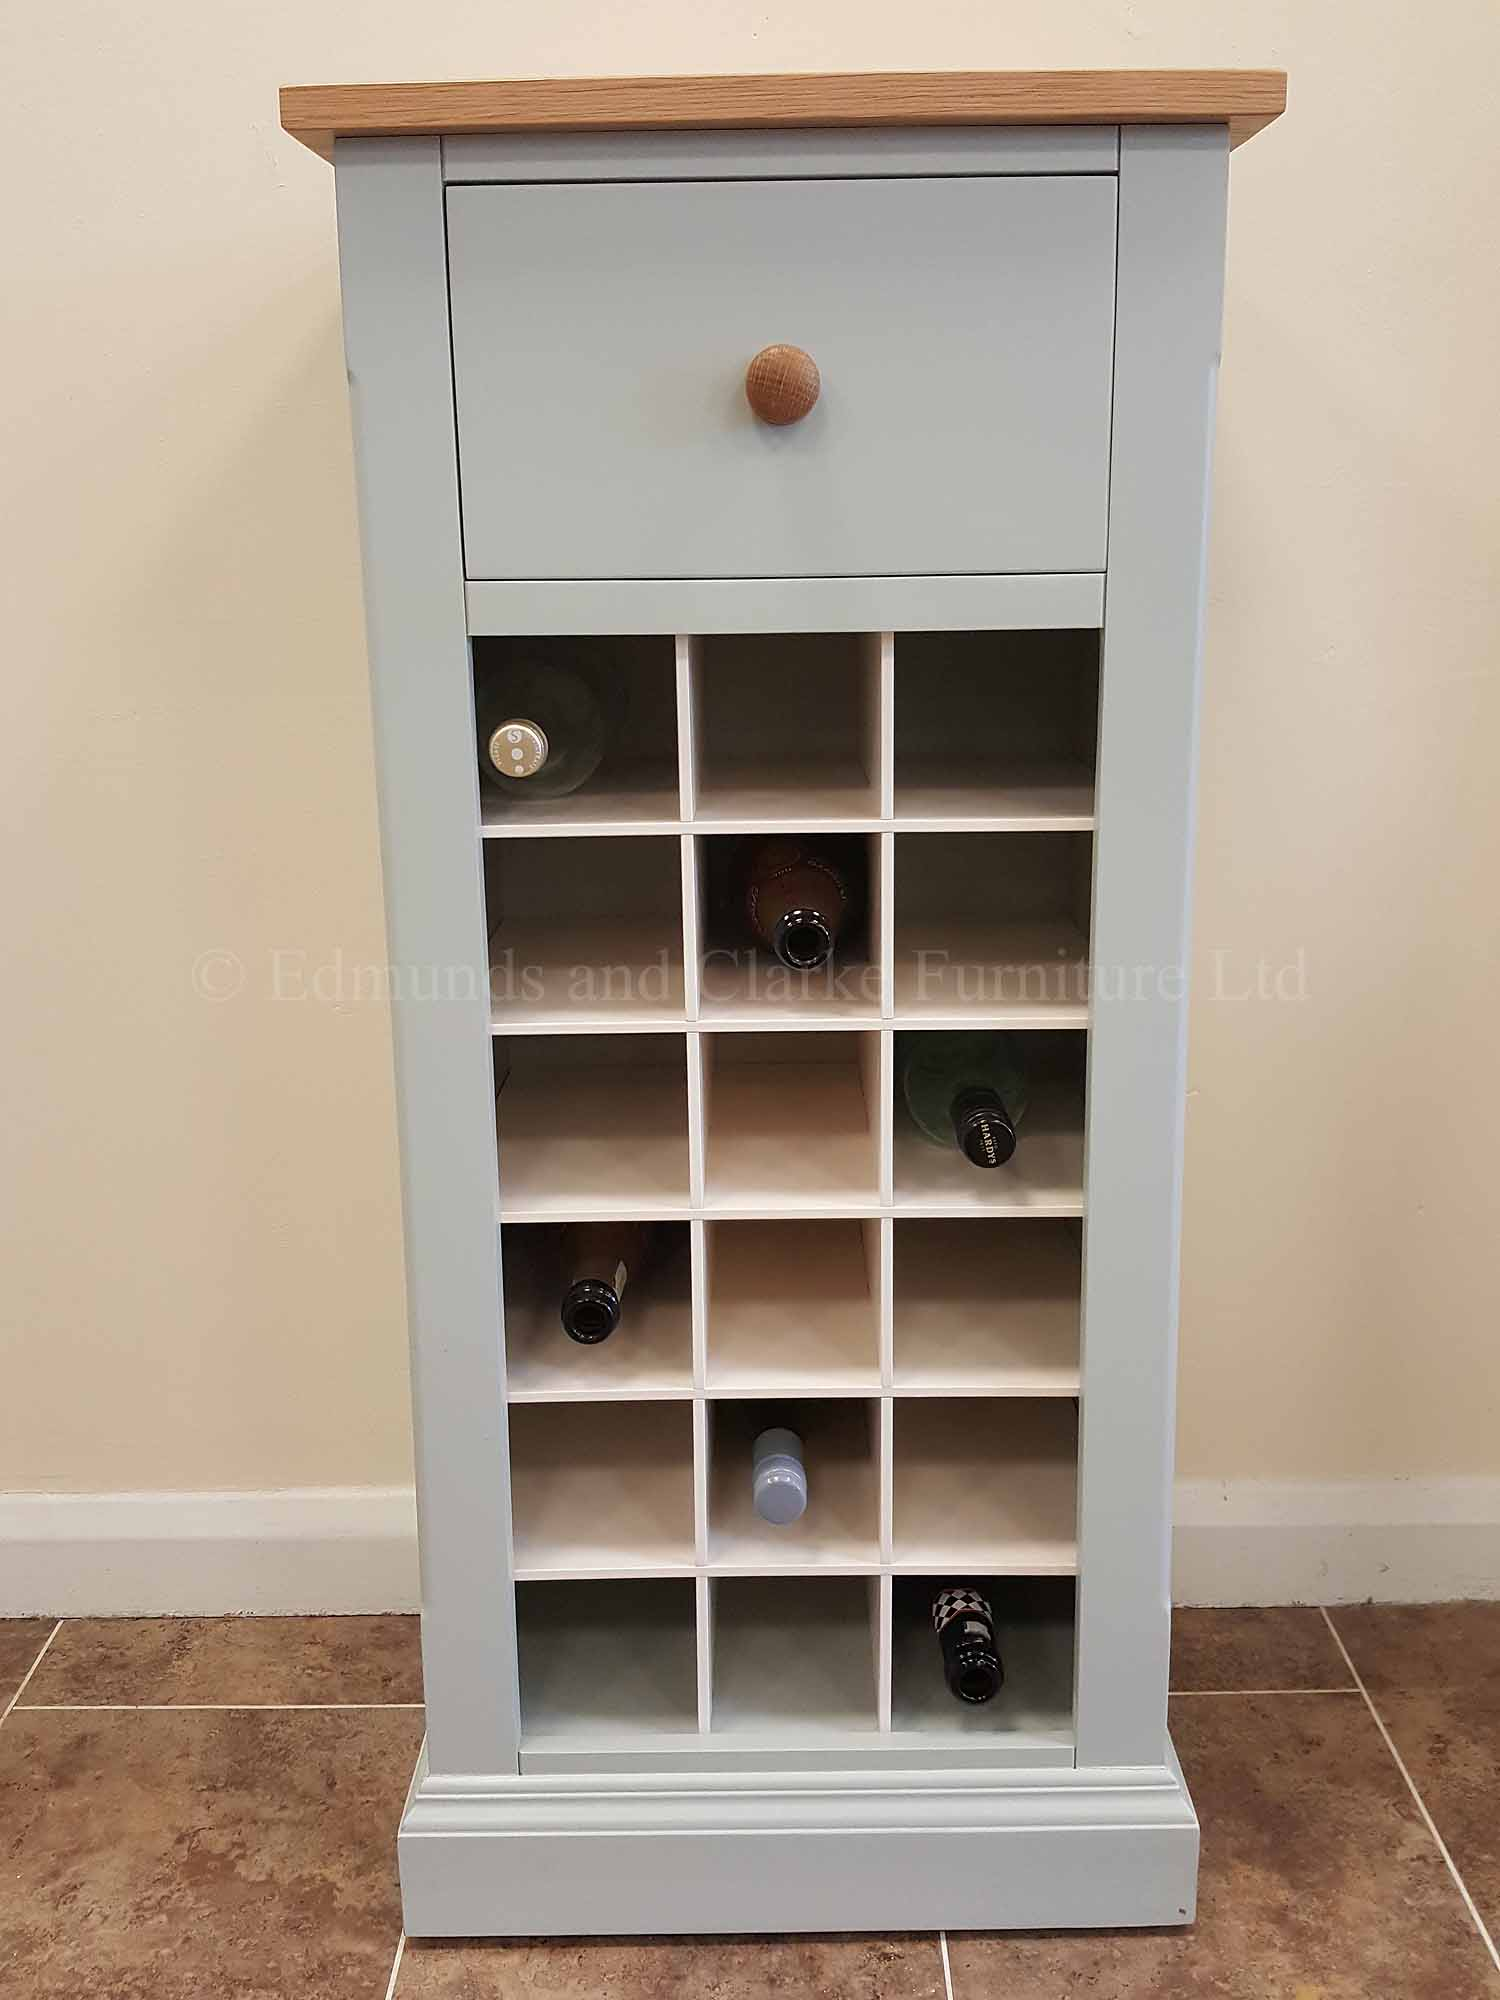 18 bottle wine rack with drawer above painted with solid oak top